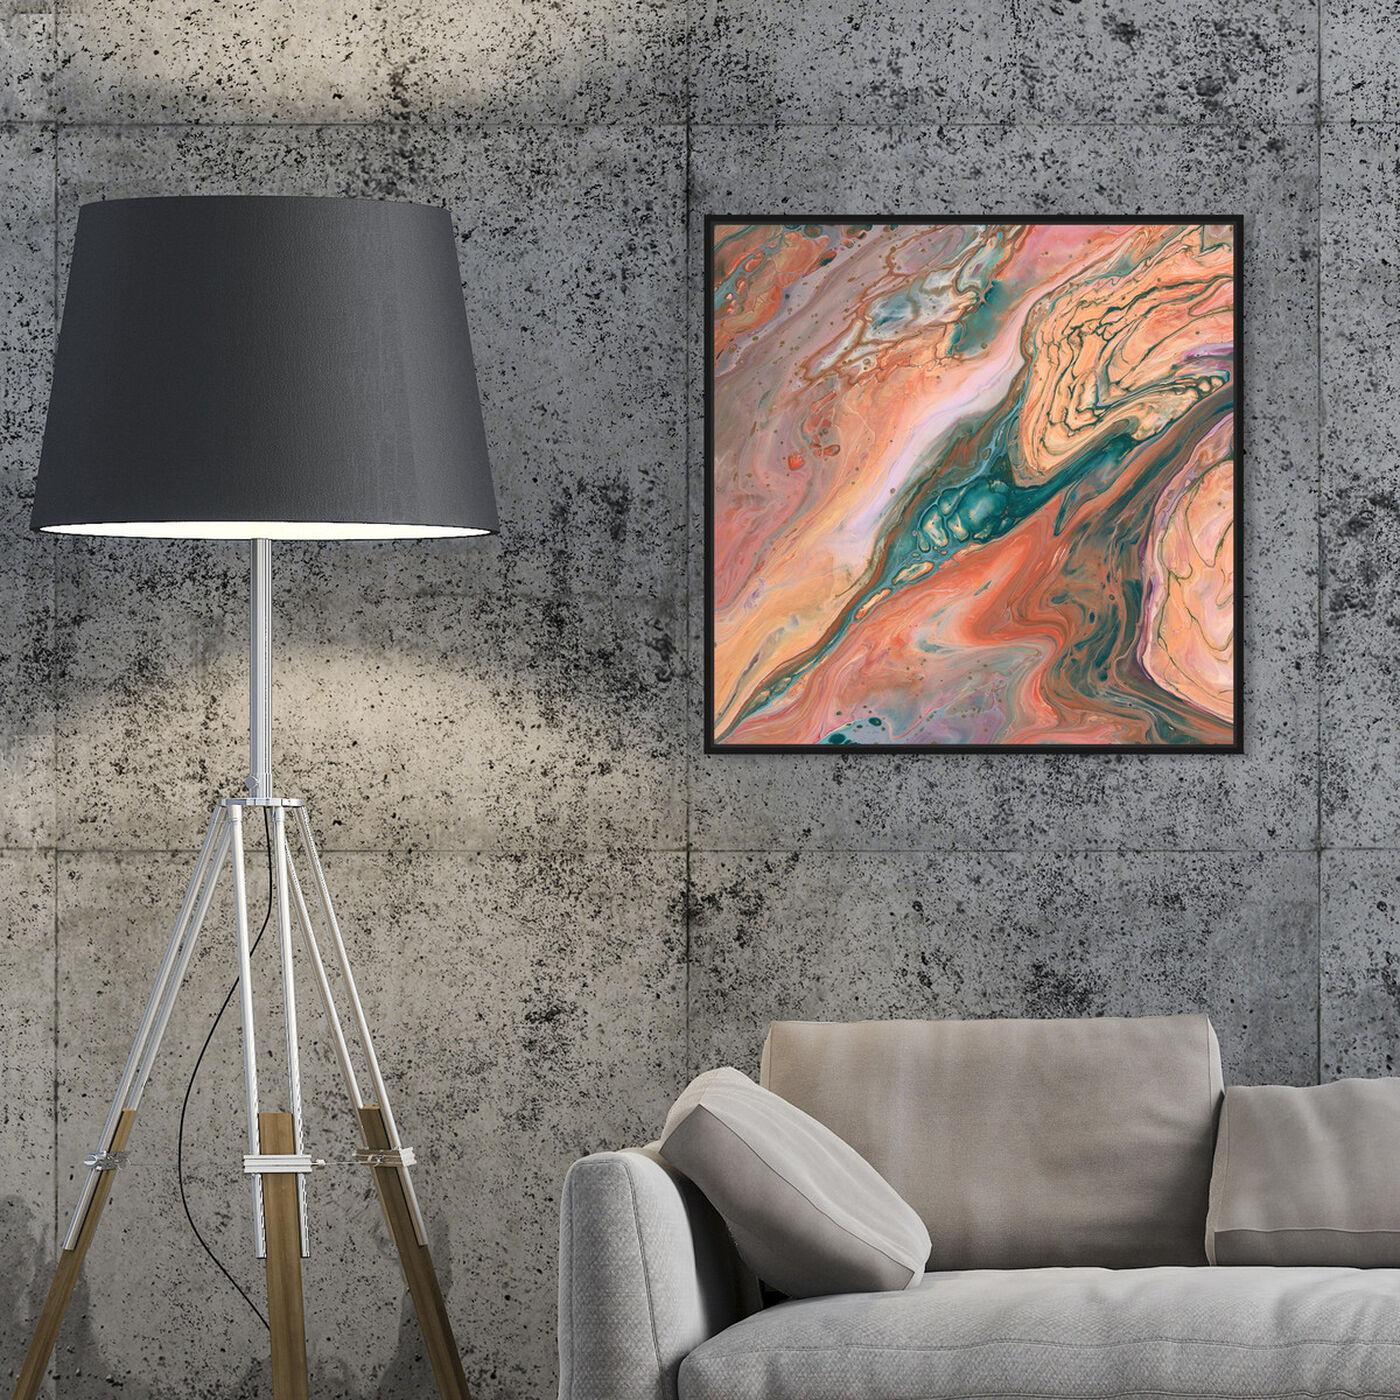 Hanging view of Orange Surreal featuring abstract and paint art.